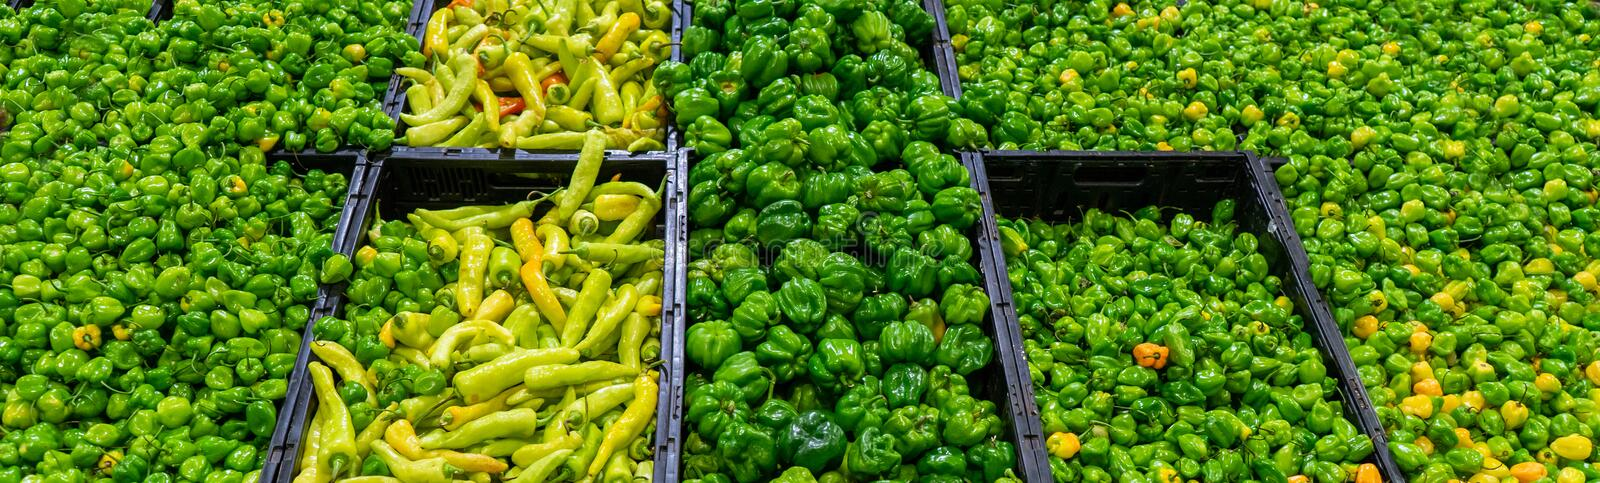 Mexican chili peppers. Mexican green chili peppers in market stock image